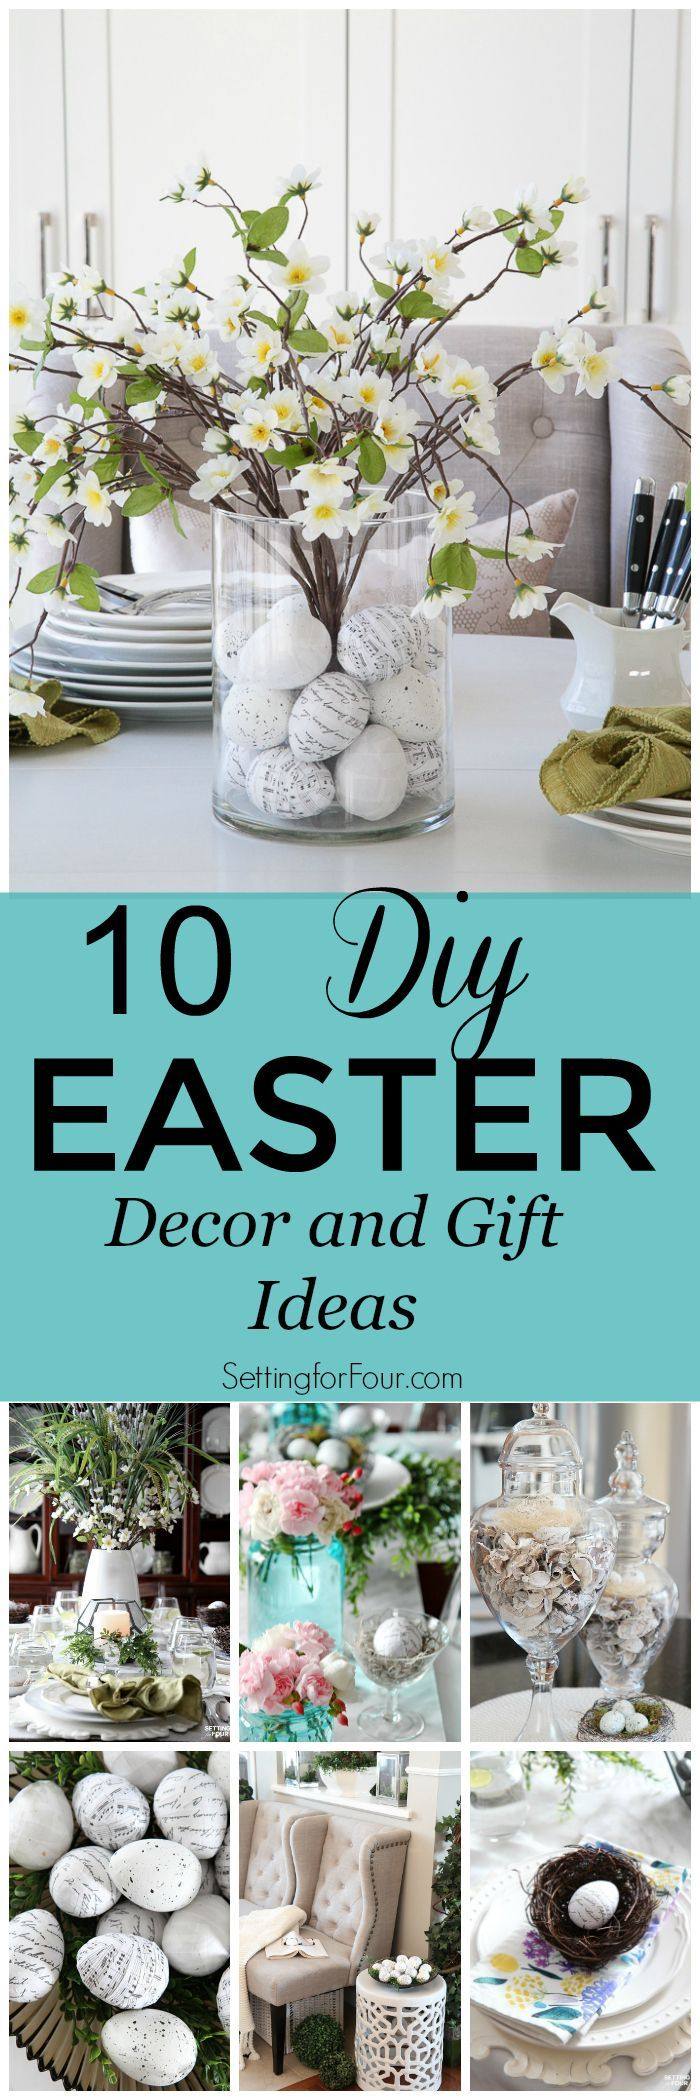 10 DIY Easter Decor and Gift Ideas